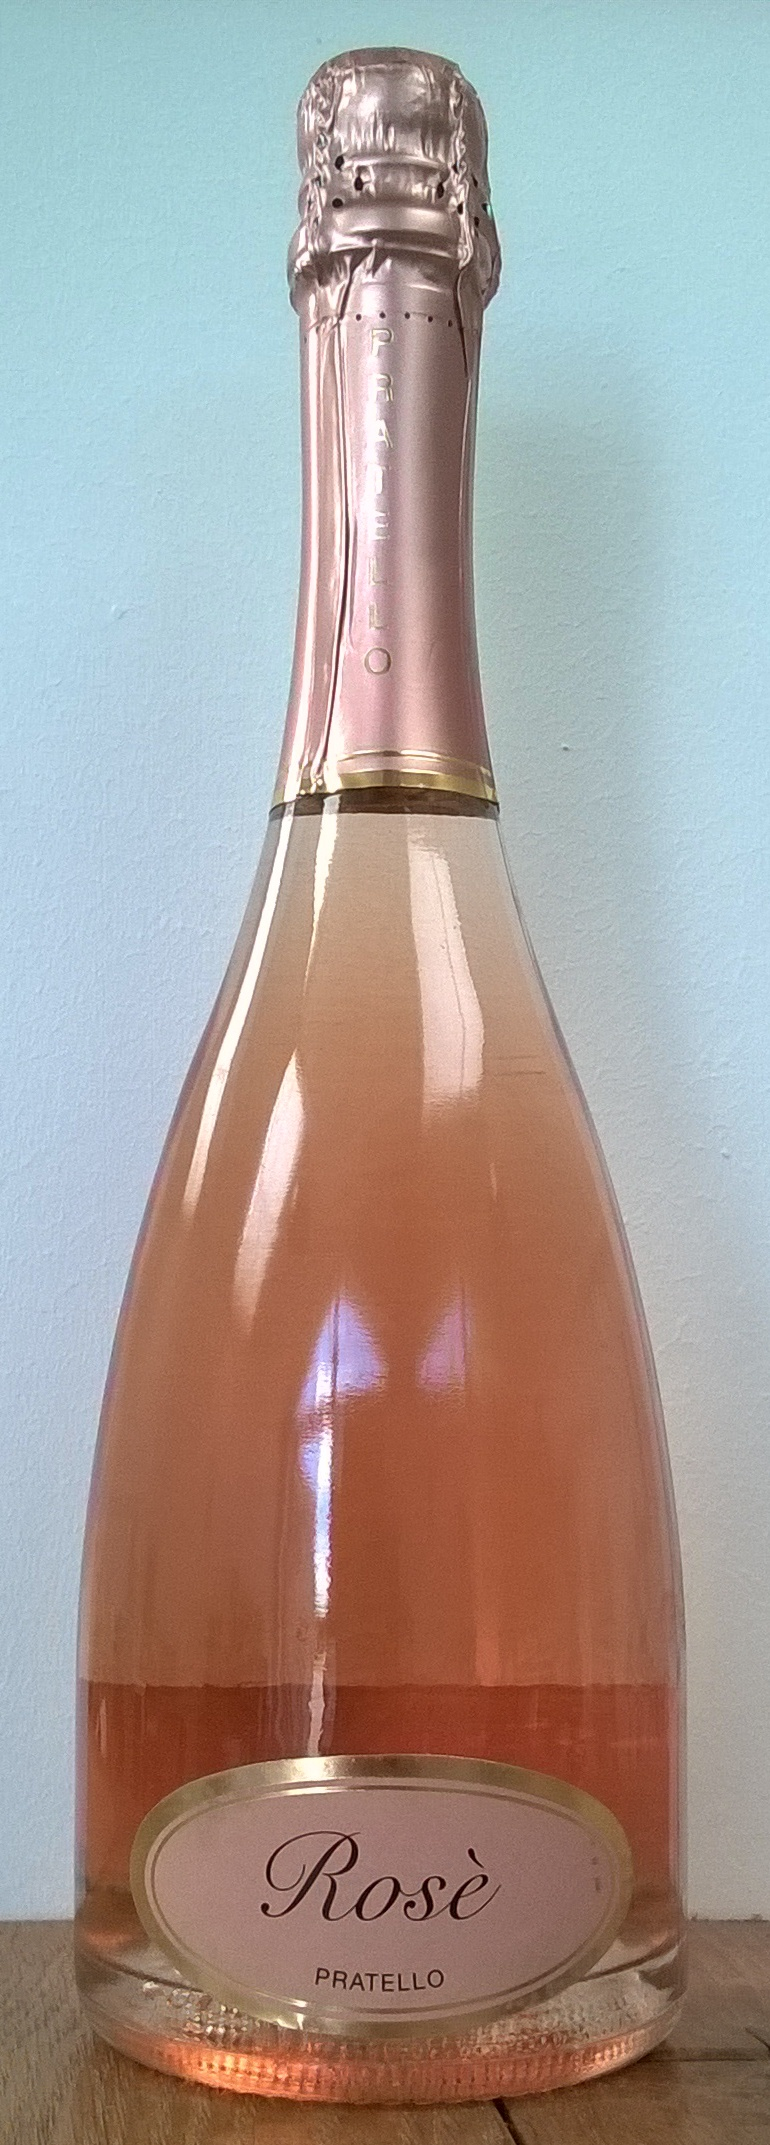 Pratello Rose Brut